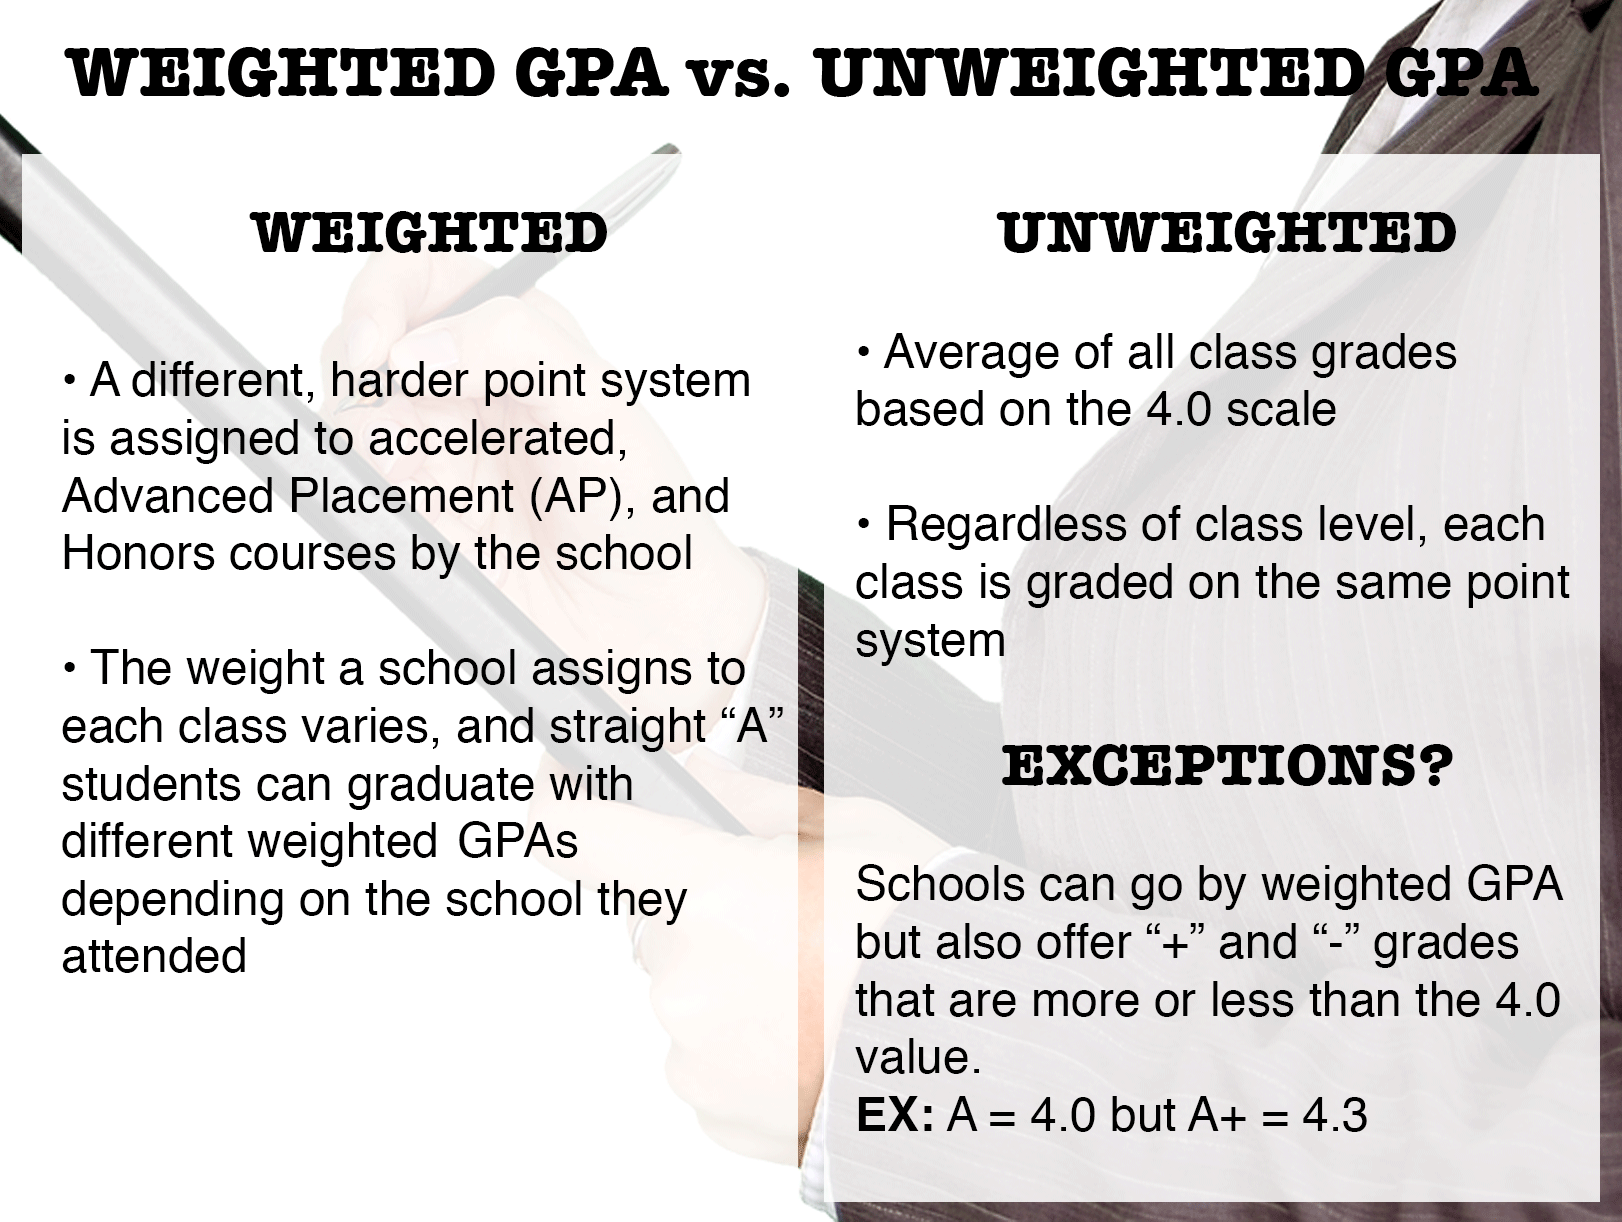 Weighted GPA vs. Unweighted GPA